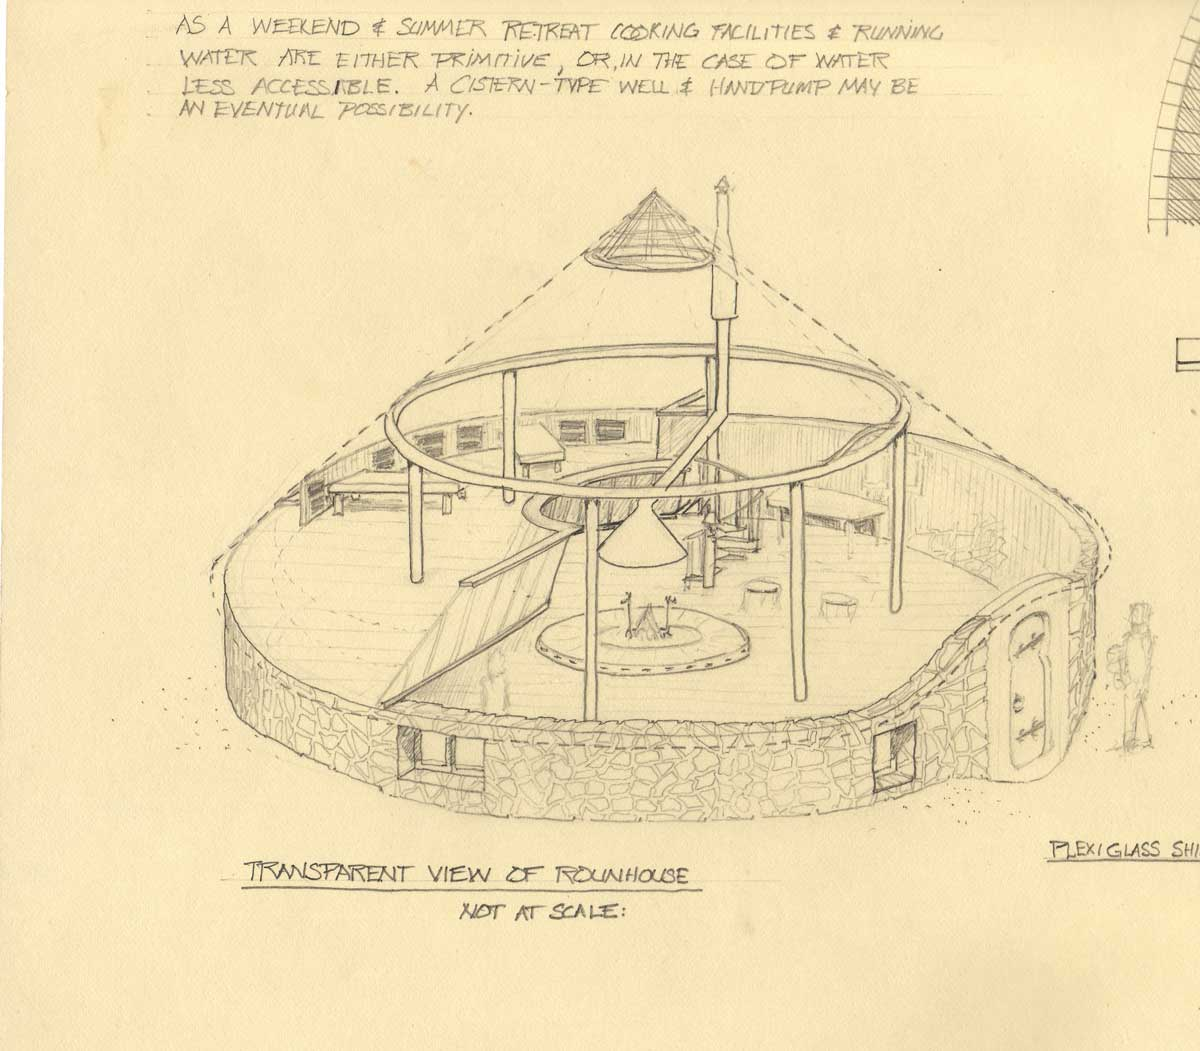 Section drawing of the Wheelhouse